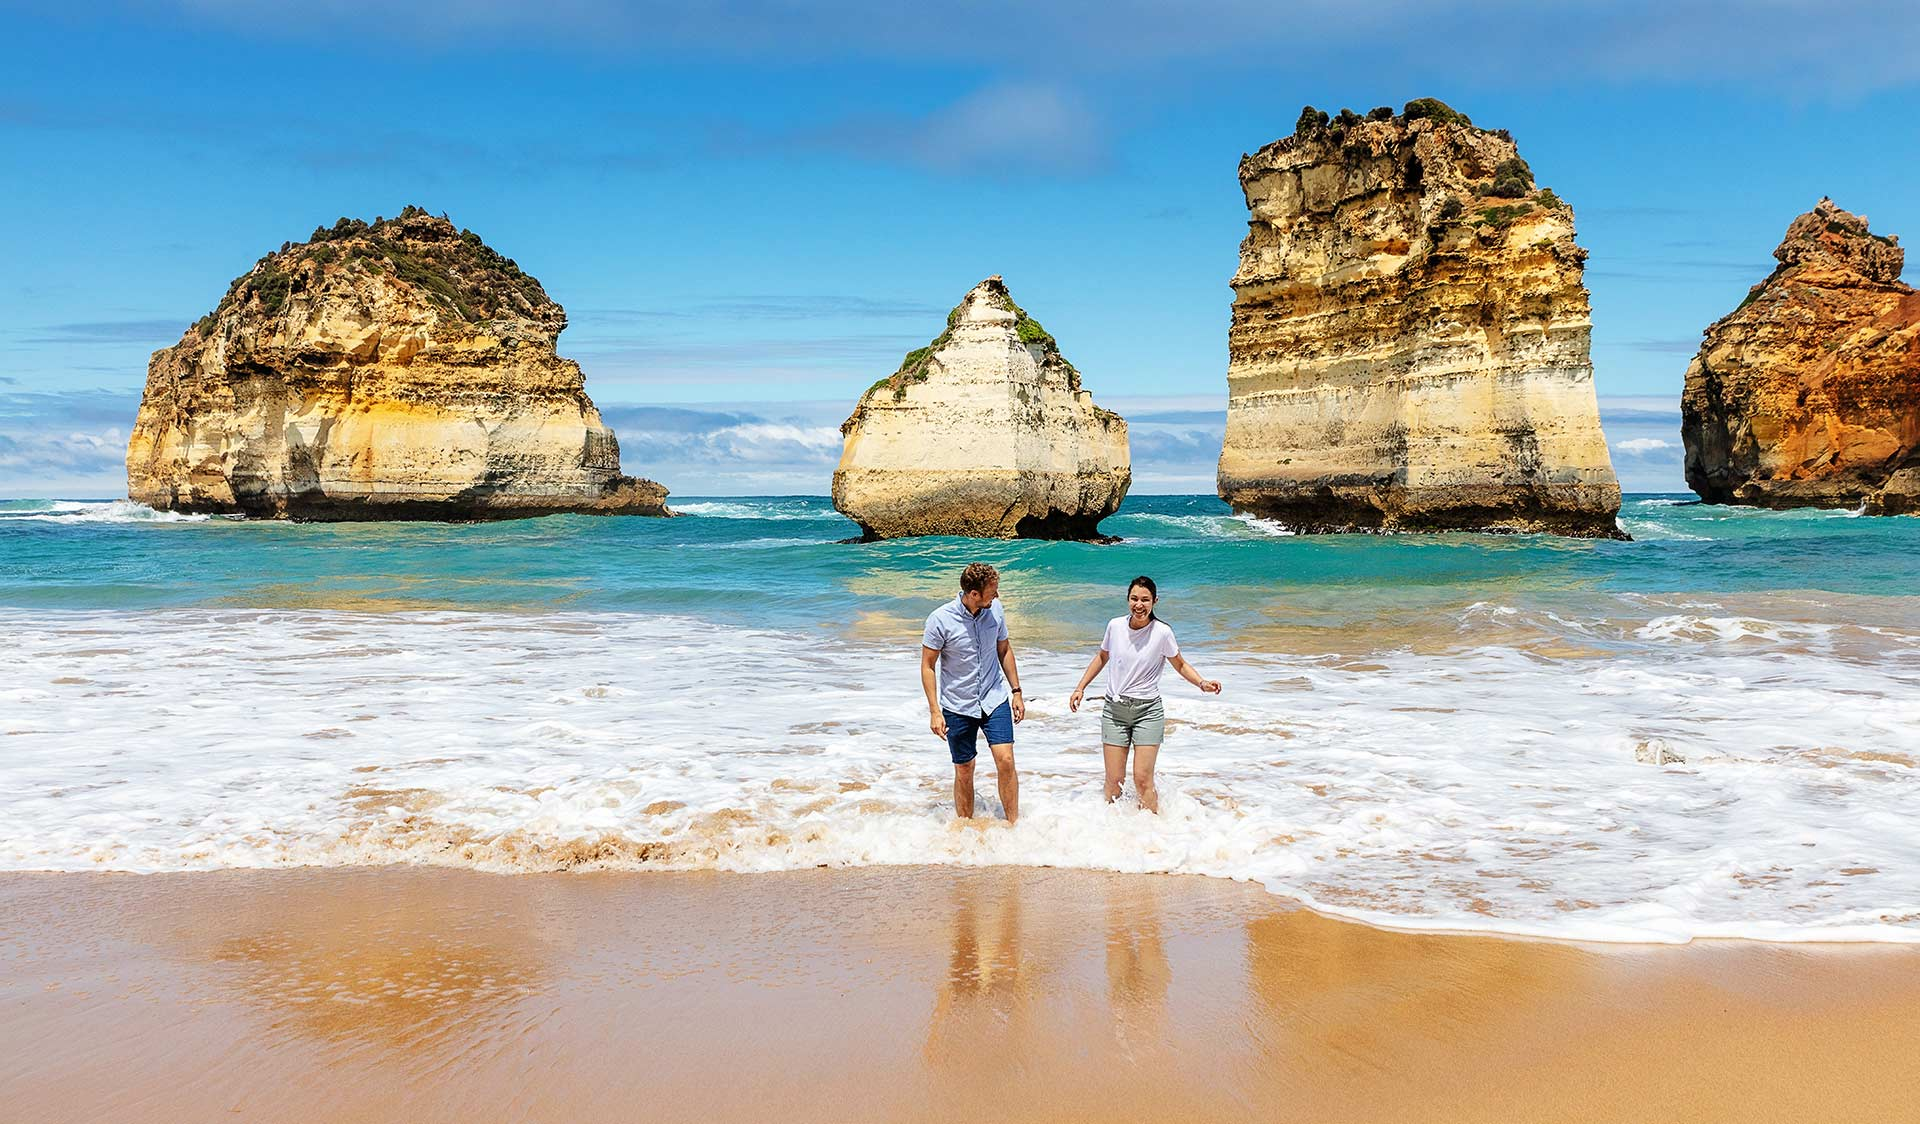 A man and woman play in shallow waters in front of the Twelve Apostles.